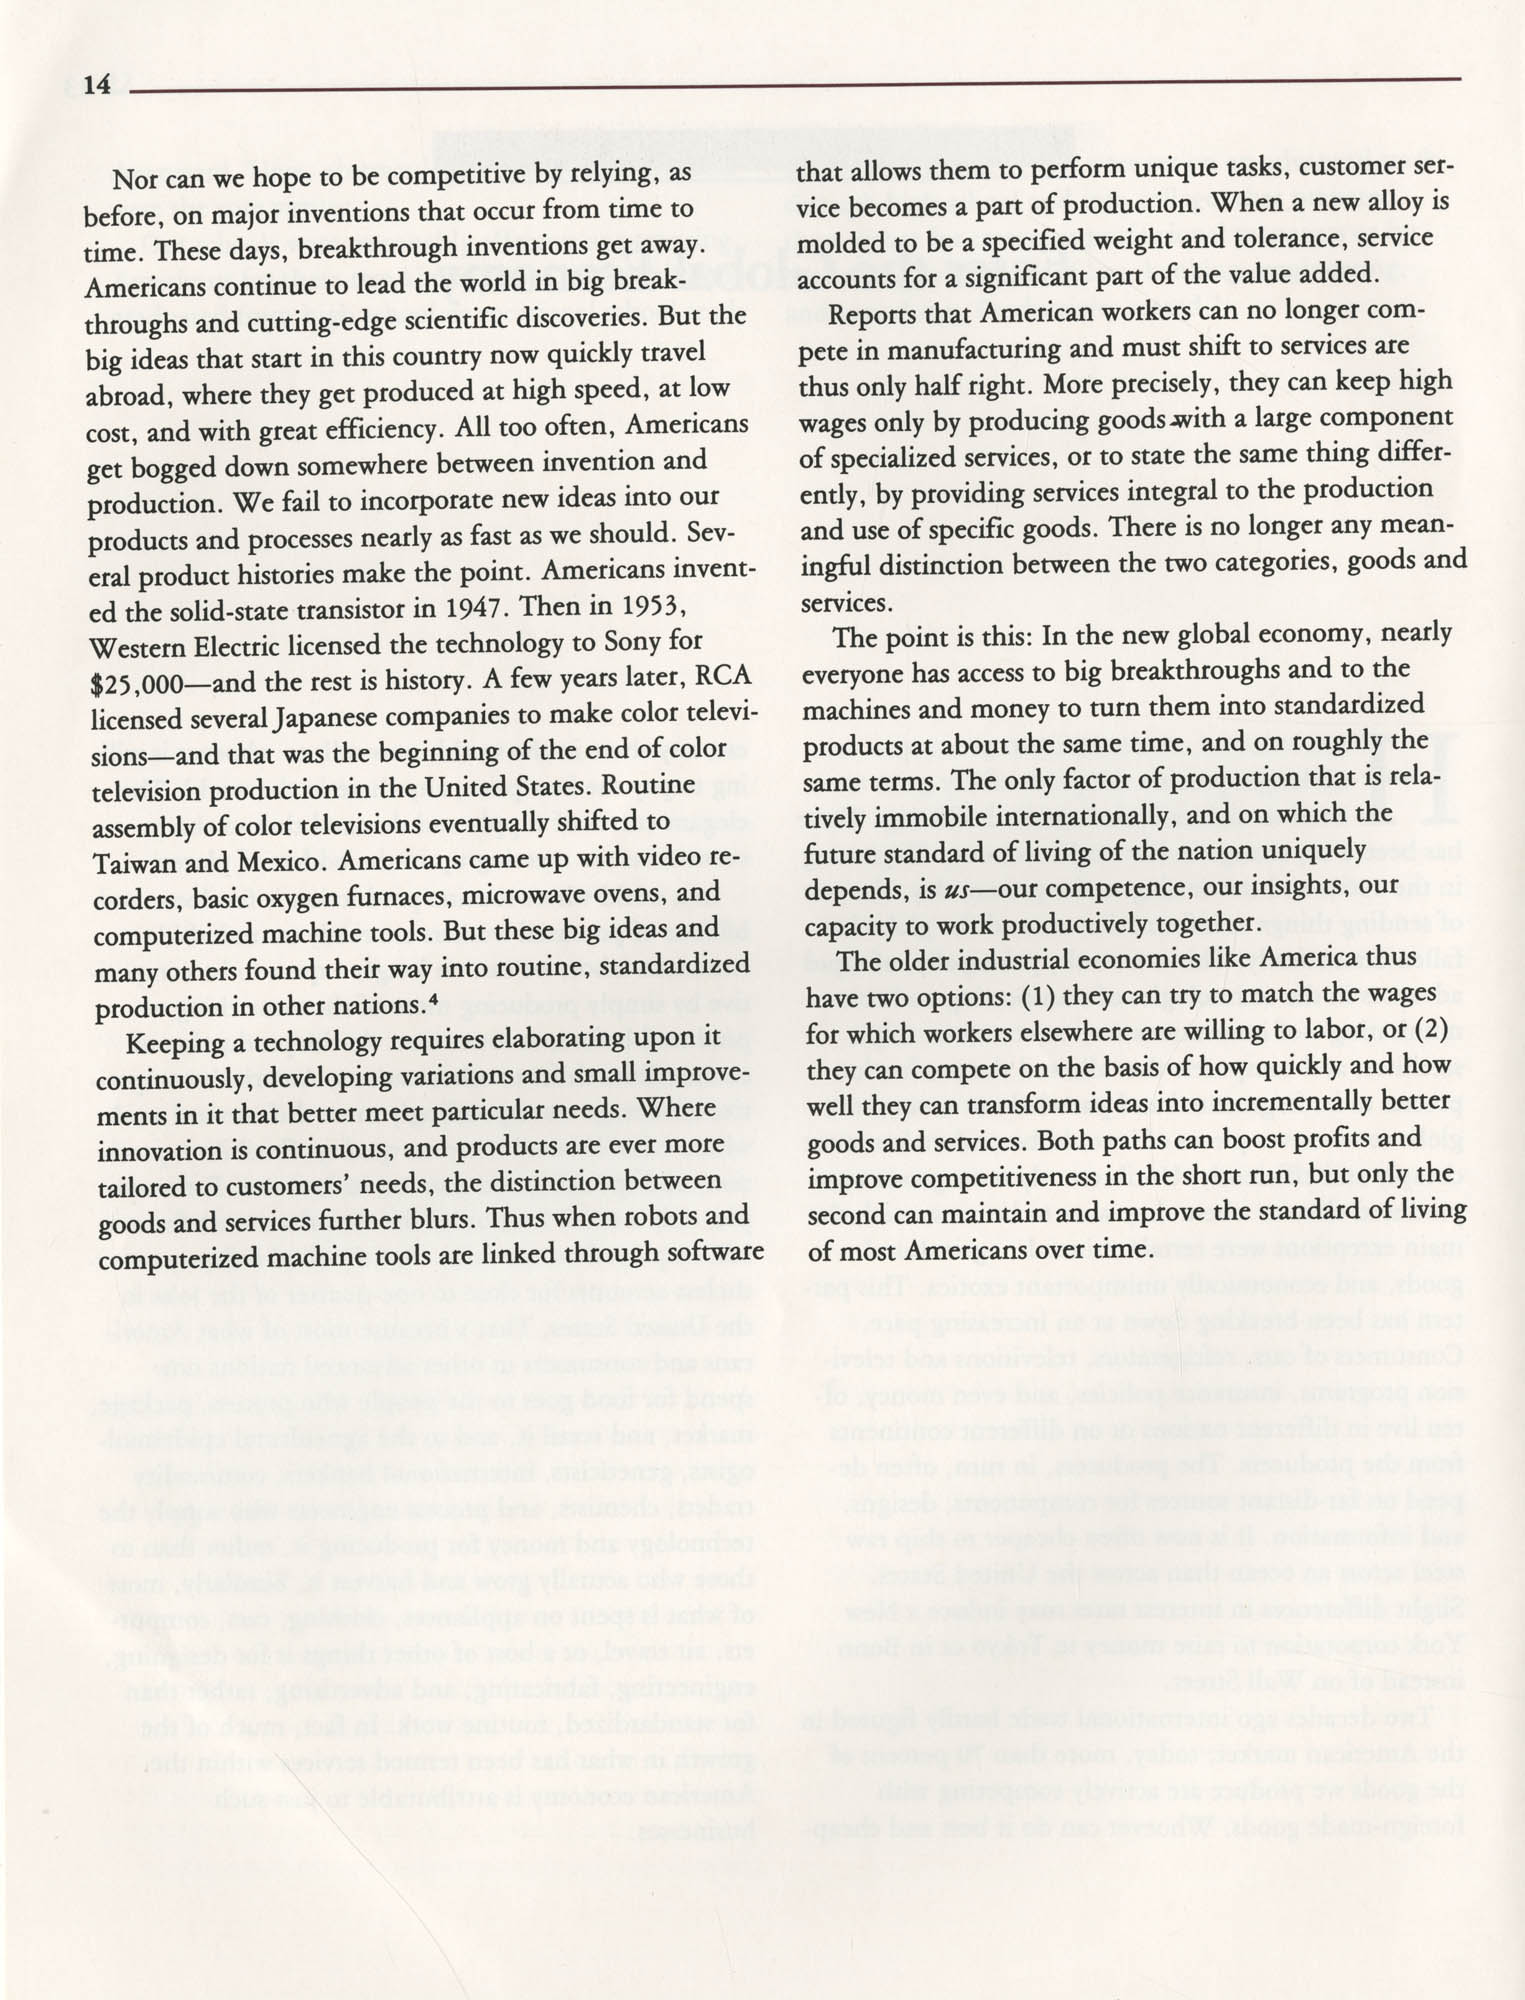 Education and the Next Economy, Page 14